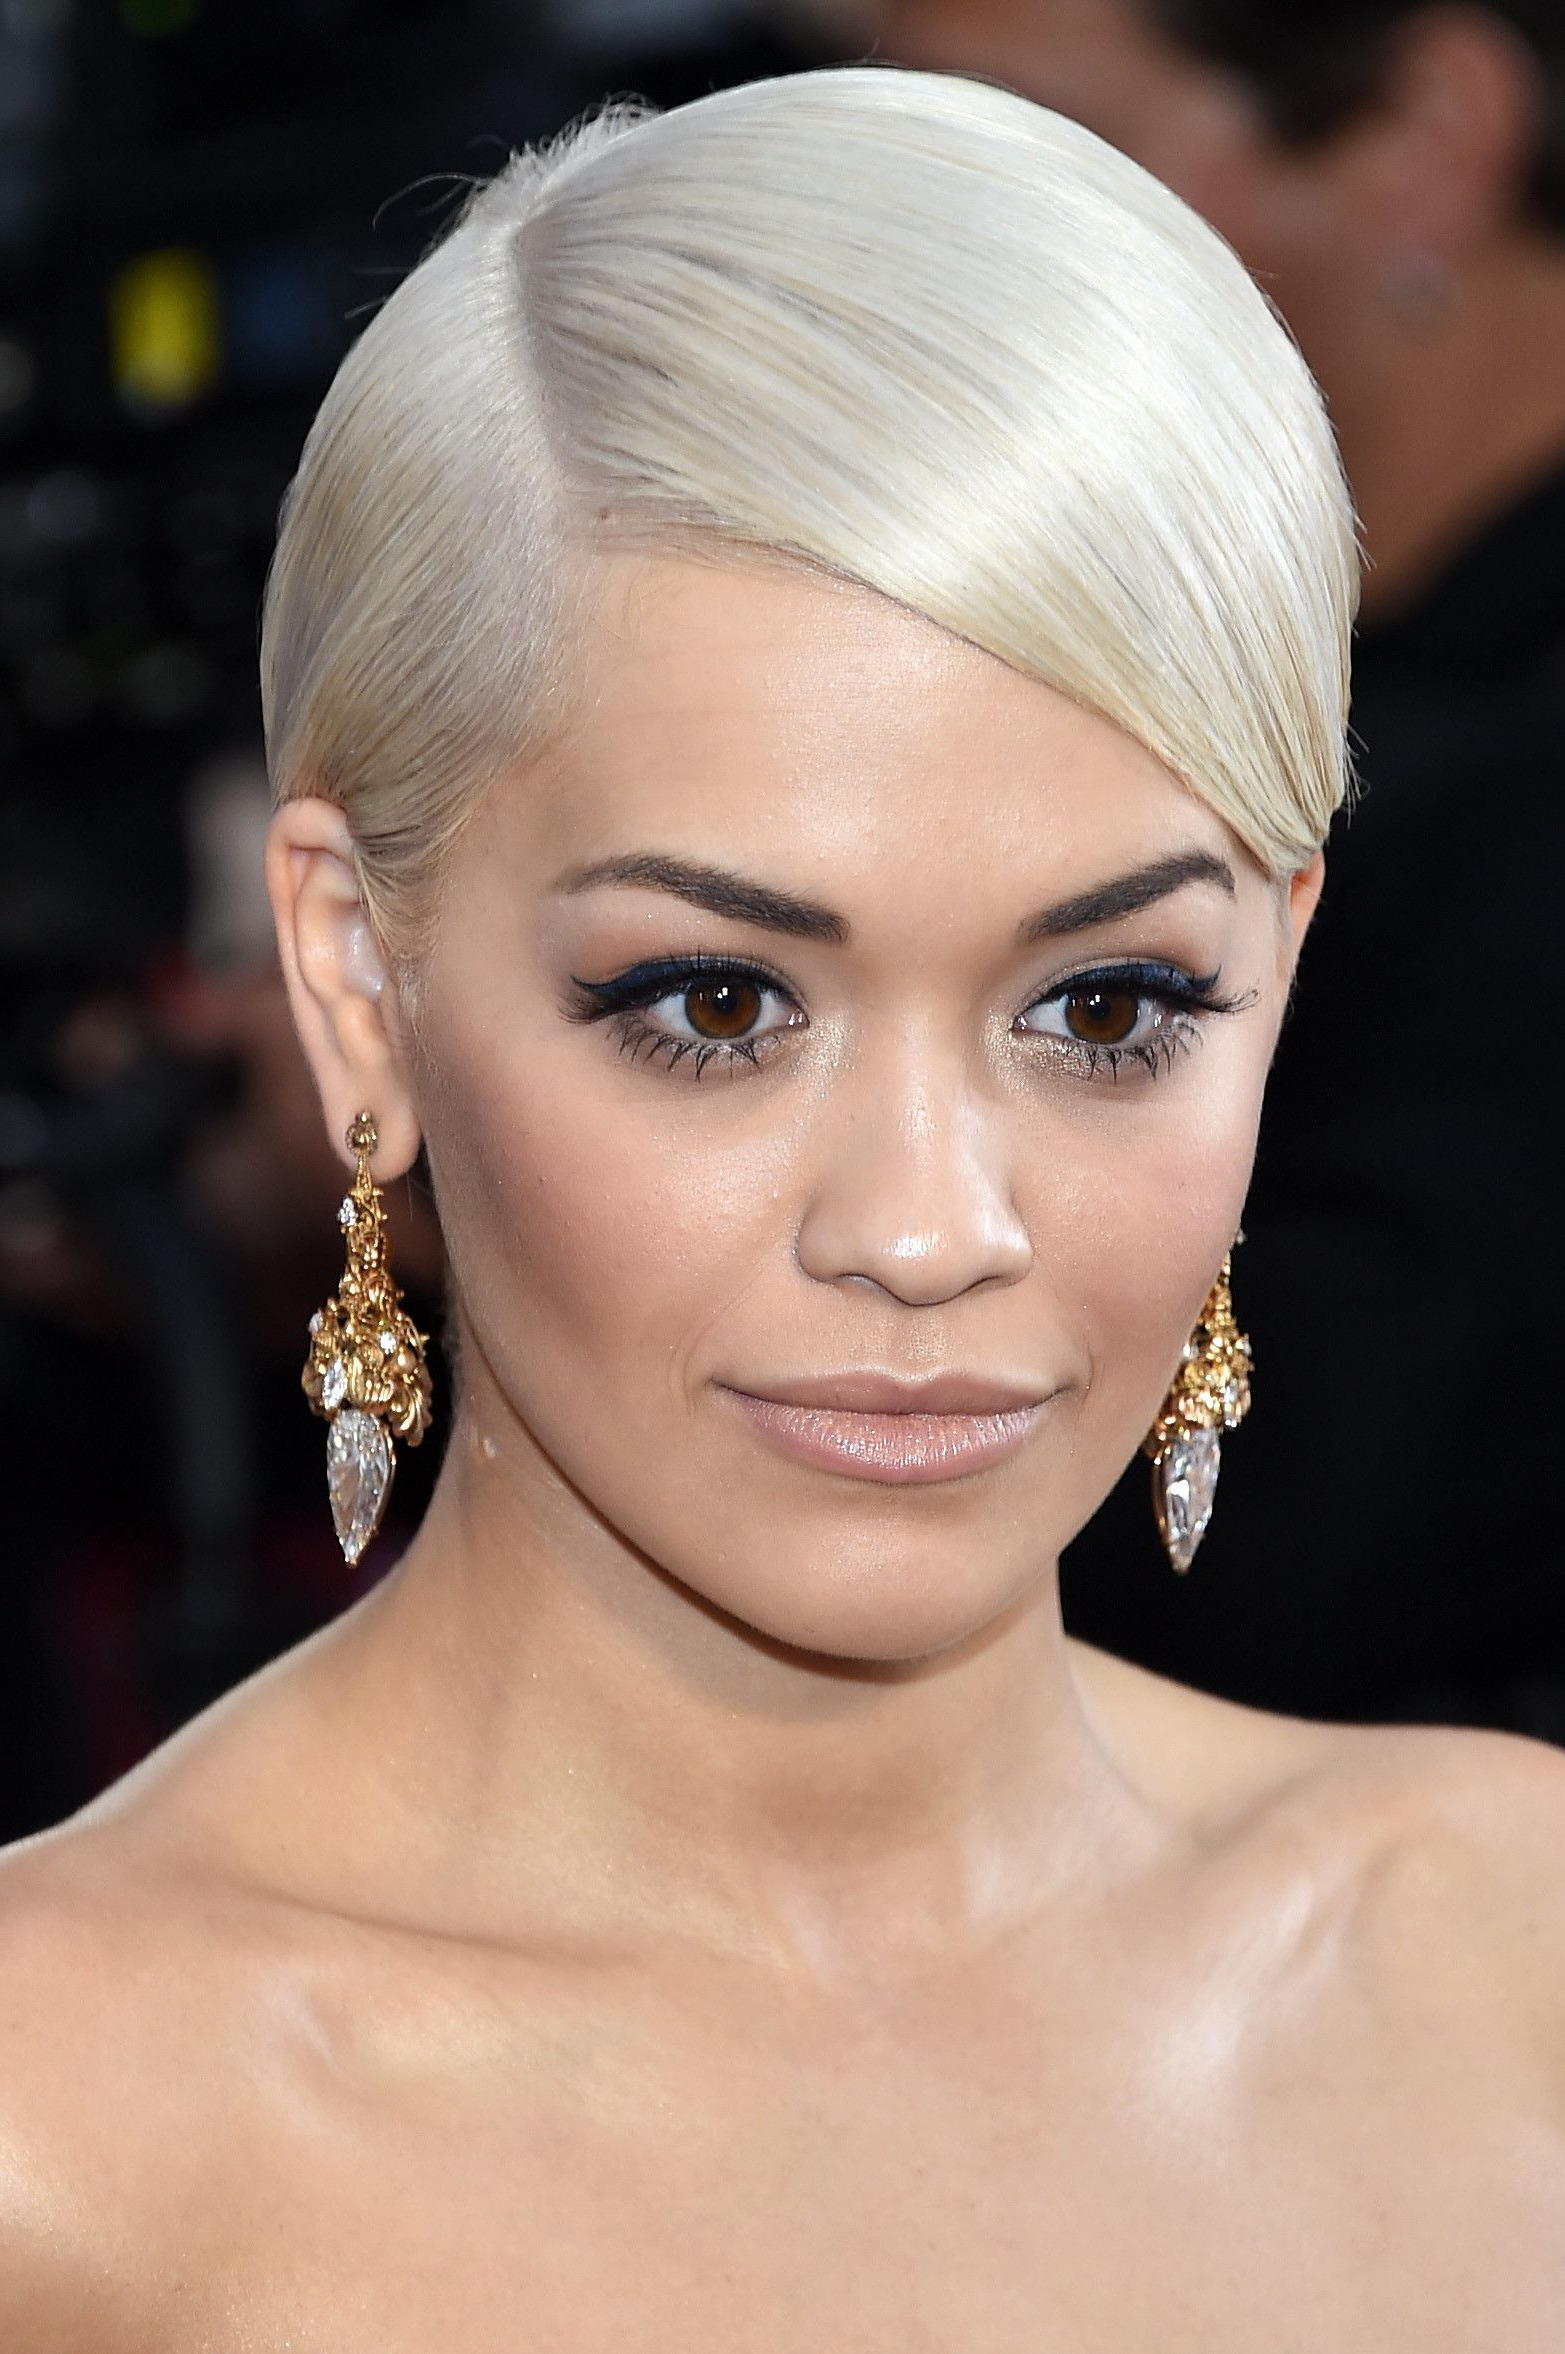 64 Short Hairstyles That Will Make You Want To Chop It All Off Pertaining To Rita Ora Short Hairstyles (View 13 of 25)